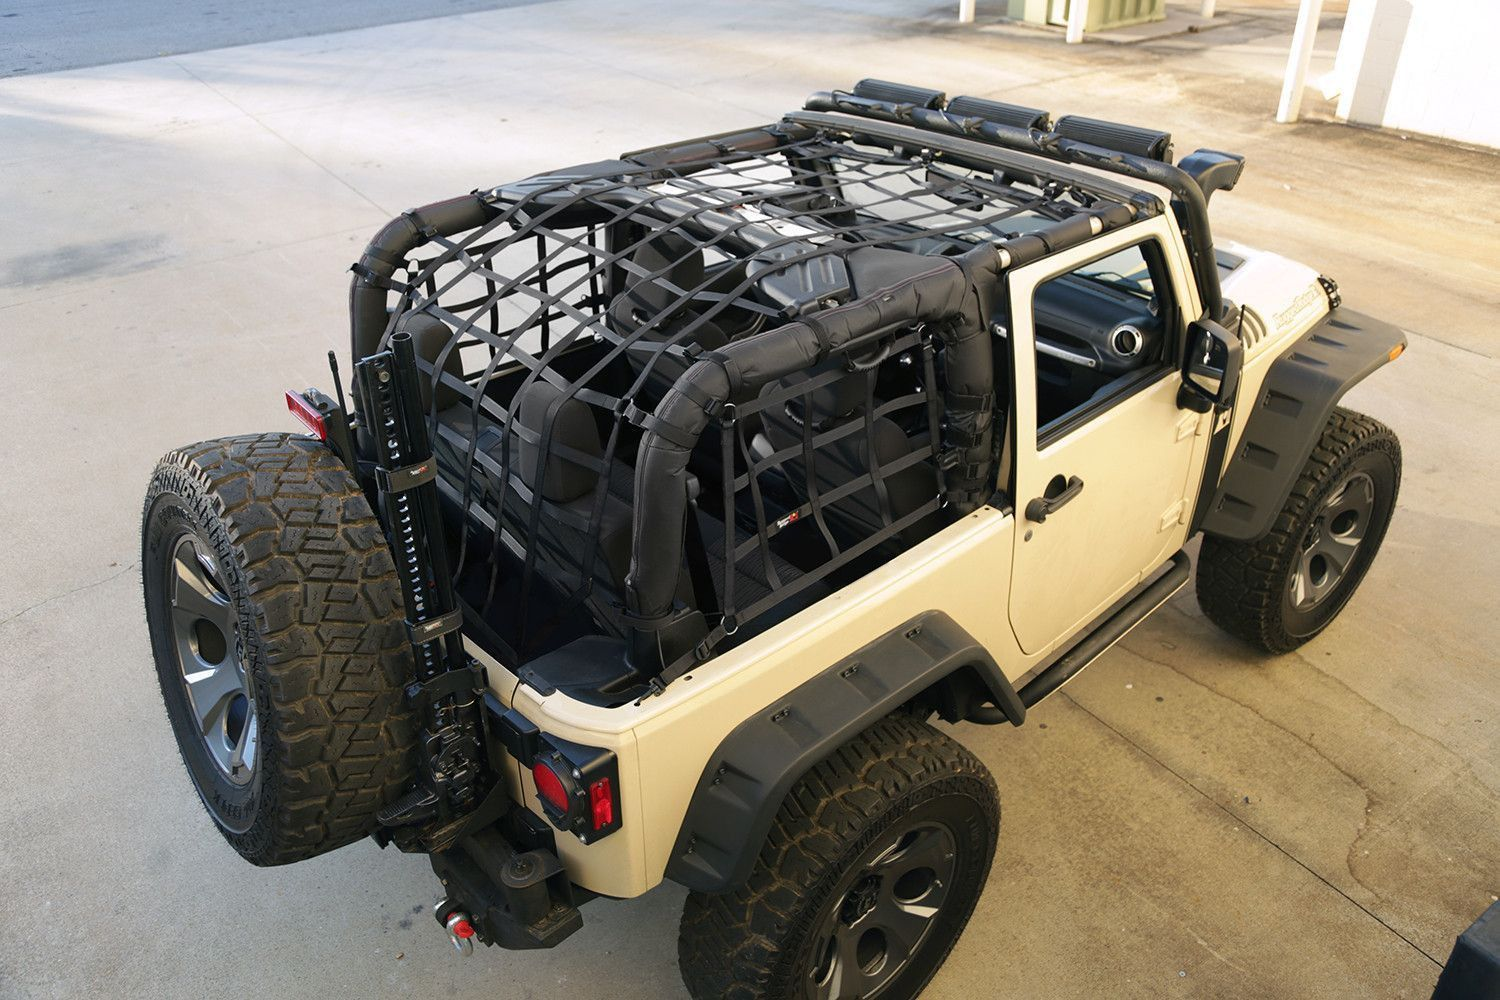 Cargo Net Black 07 16 Jeep Wrangler Jk 2 Door Jeep Wrangler